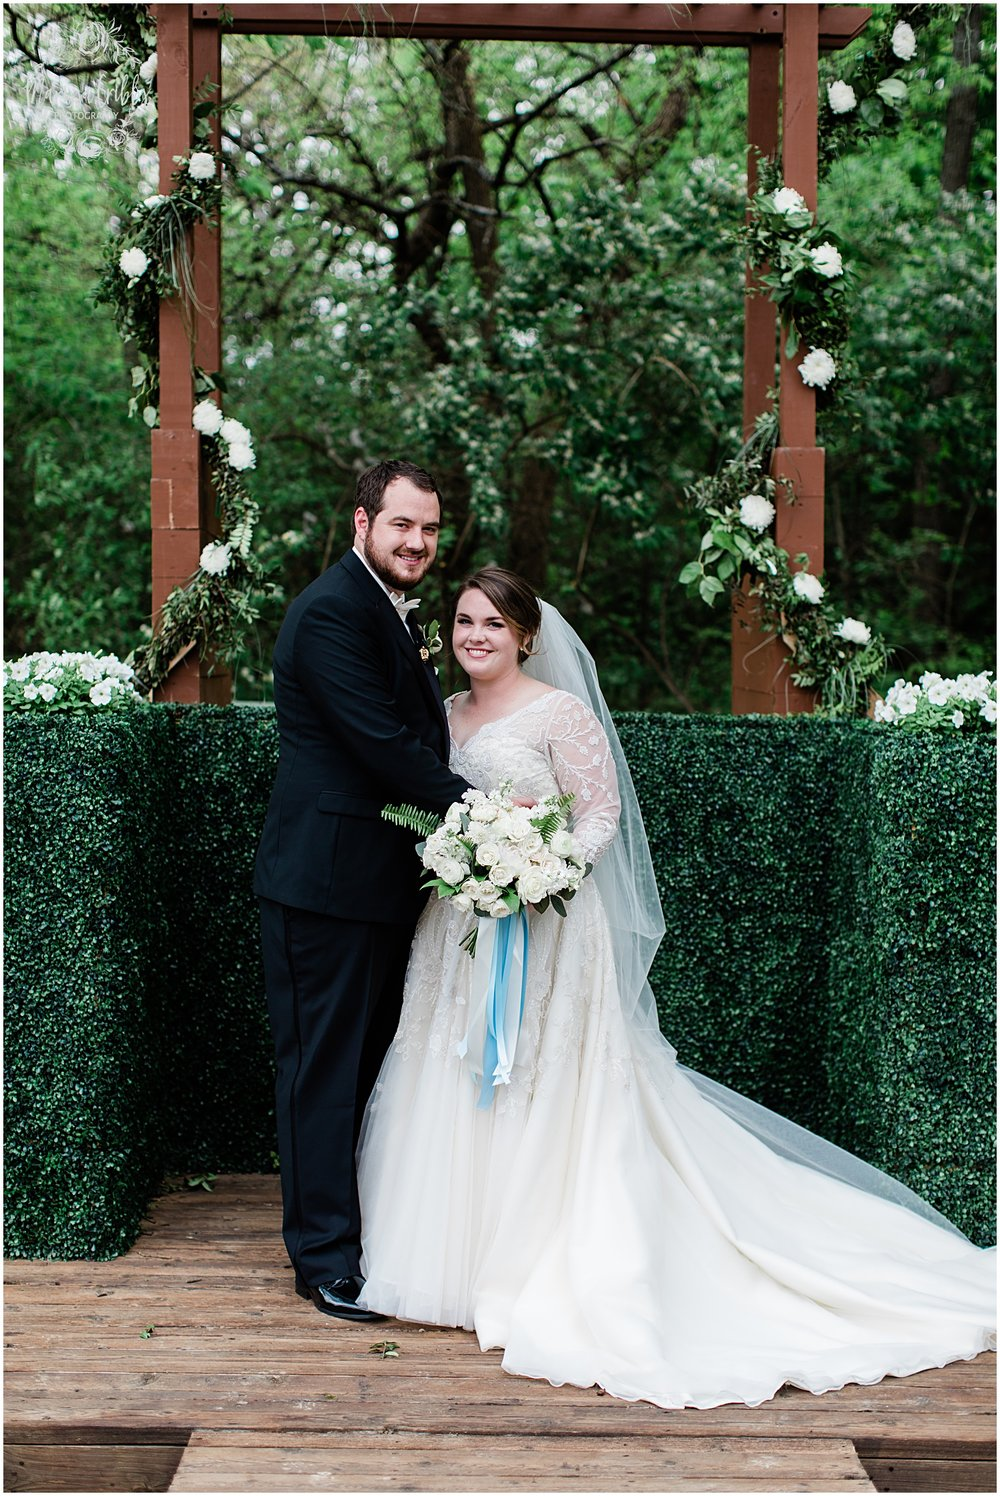 GORBY WEDDING | MARISSA CRIBBS PHOTOGRAPHY_5020.jpg